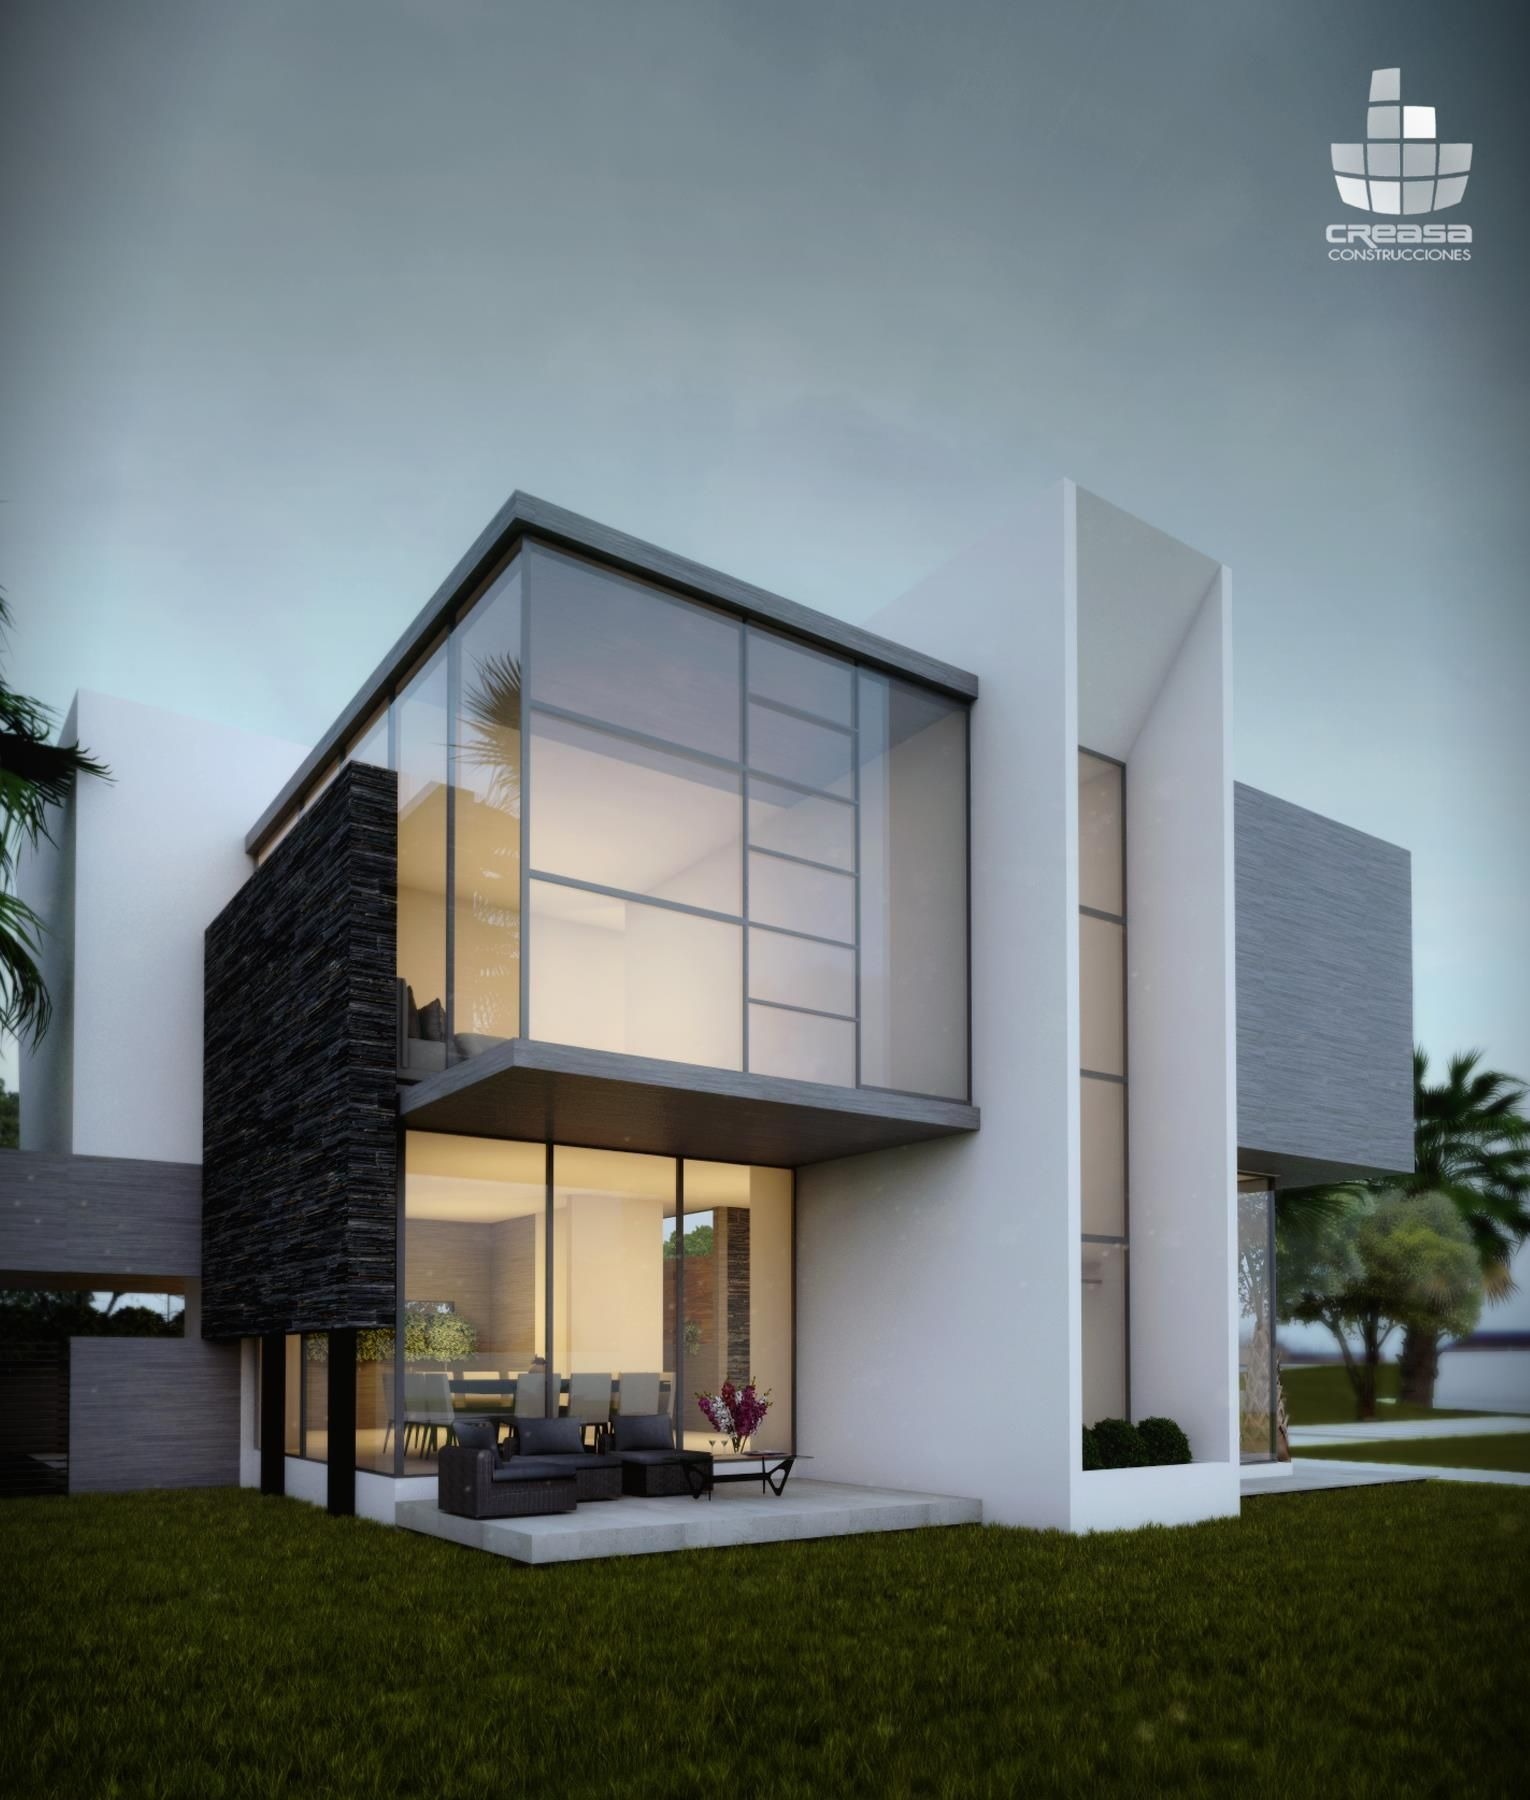 Creasa modern architecture pinterest villas house for Modern house simple